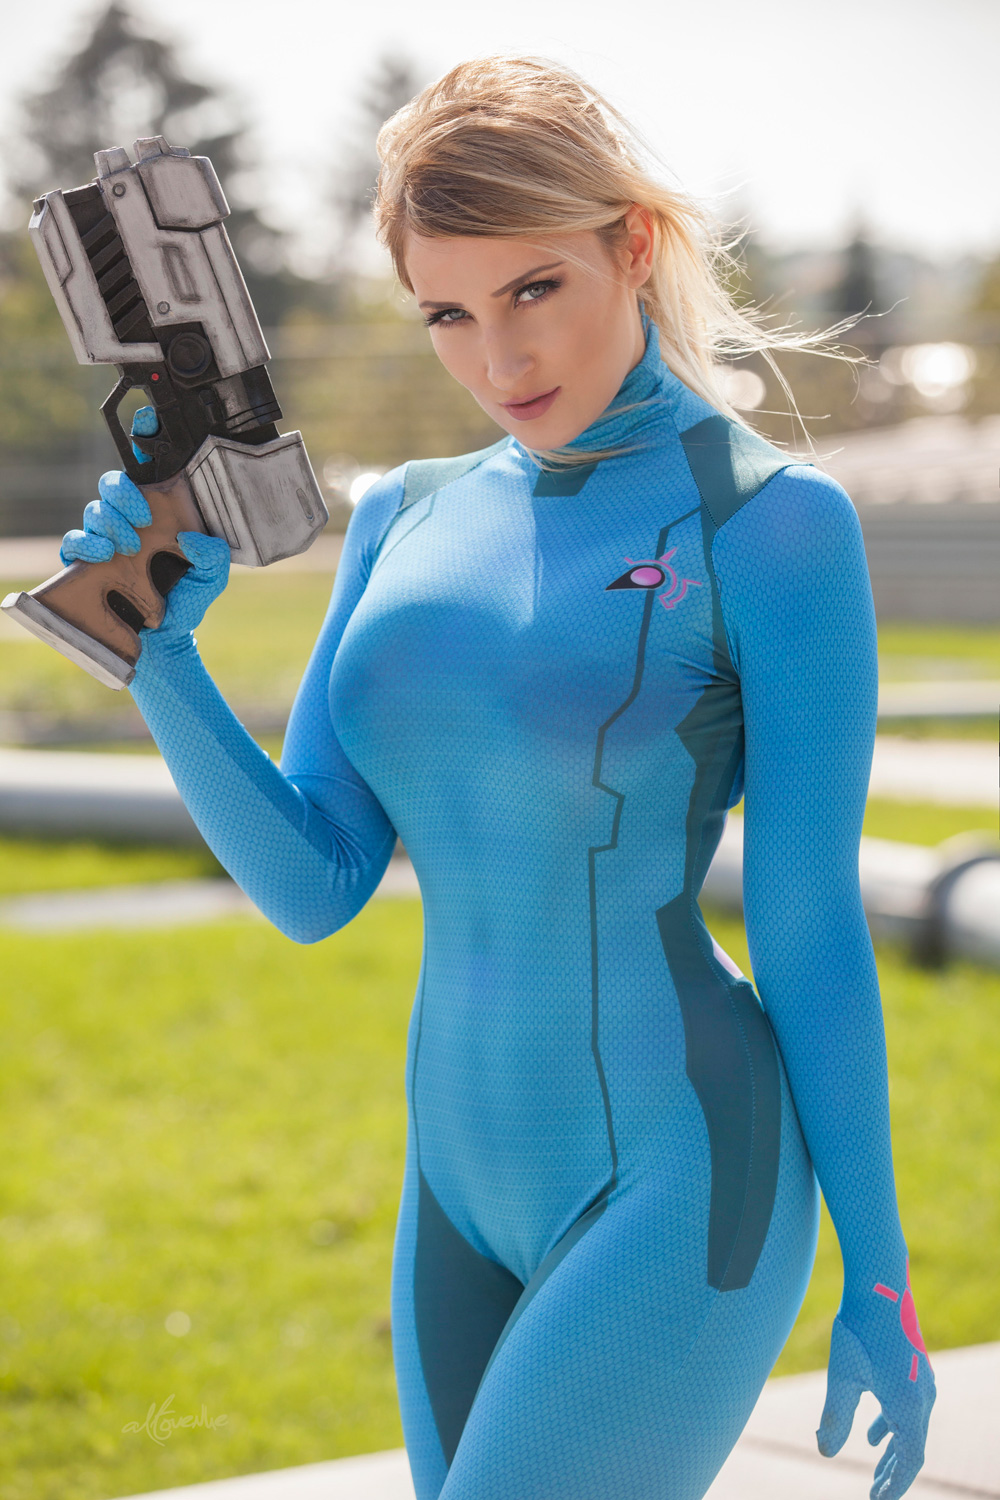 holly wolf cosplay